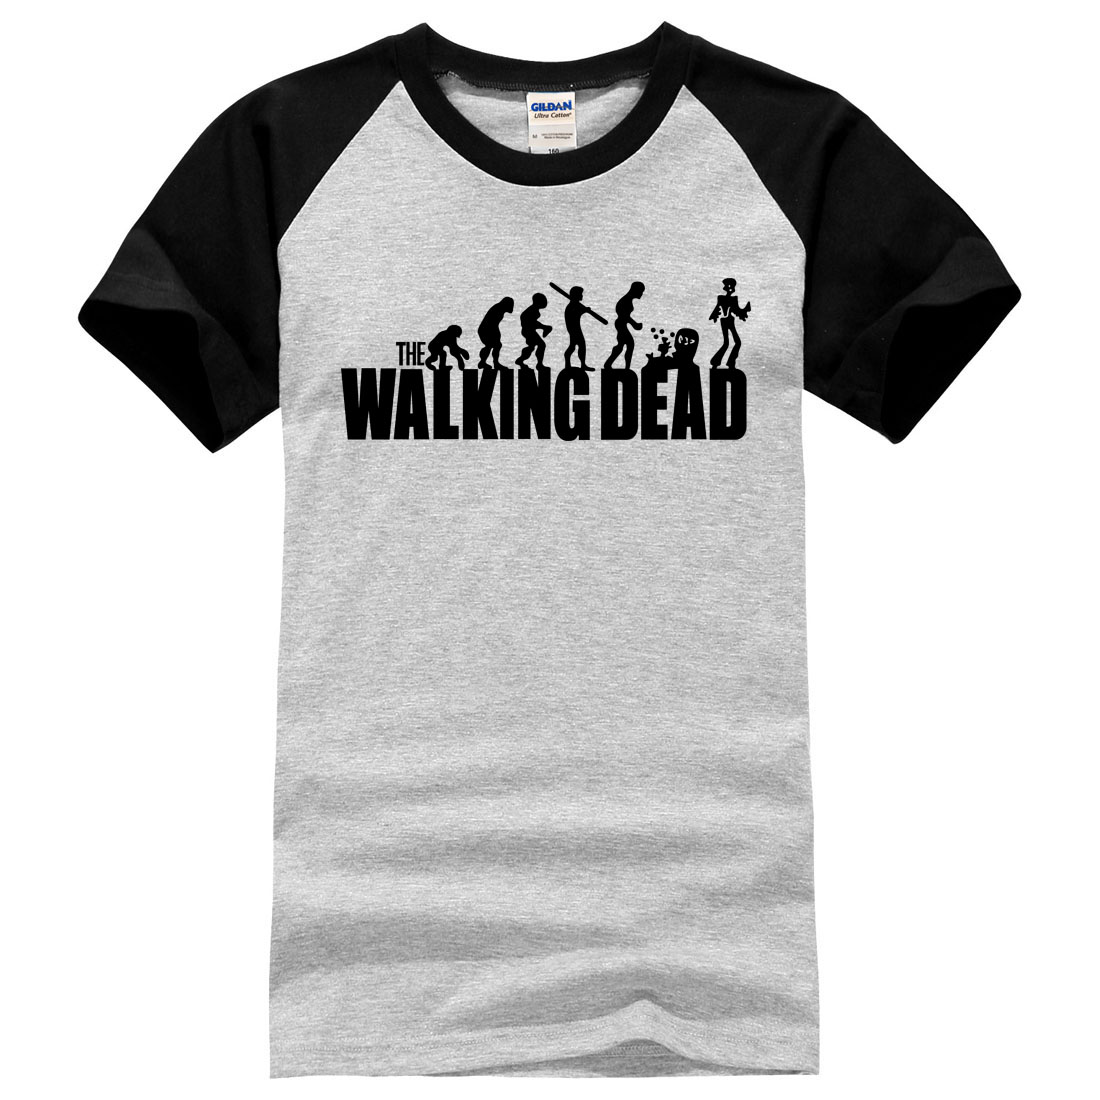 2017 new the walking dead Printed T-shirt 100% Cotton Men t shirt Casual Fitness brand Clothing Tops Tees male Mens New Summer